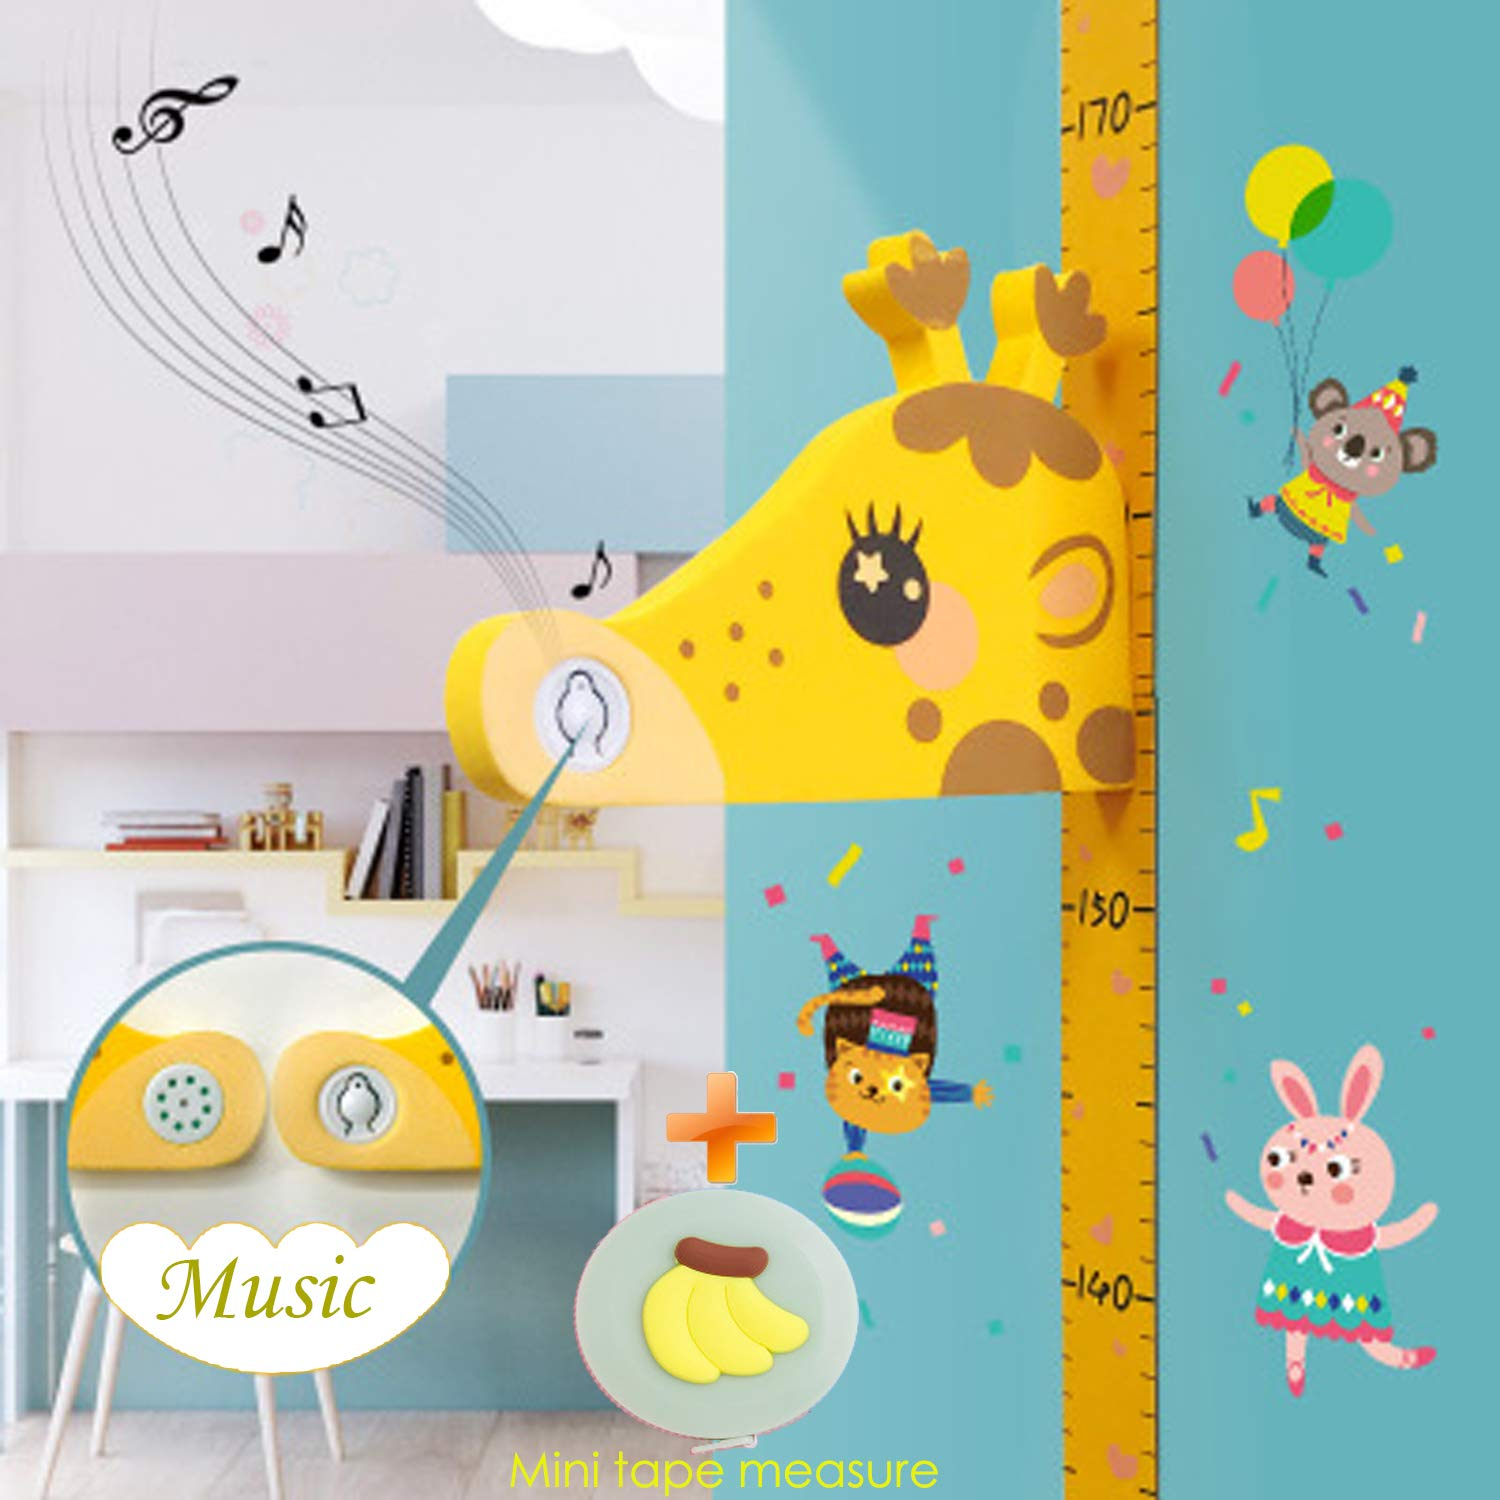 HELIWOO Children Height Growth Chart Ruler for Kids Room Decor,3D Movable Giraffe Height Ruler with Music Nursery Wall Decals